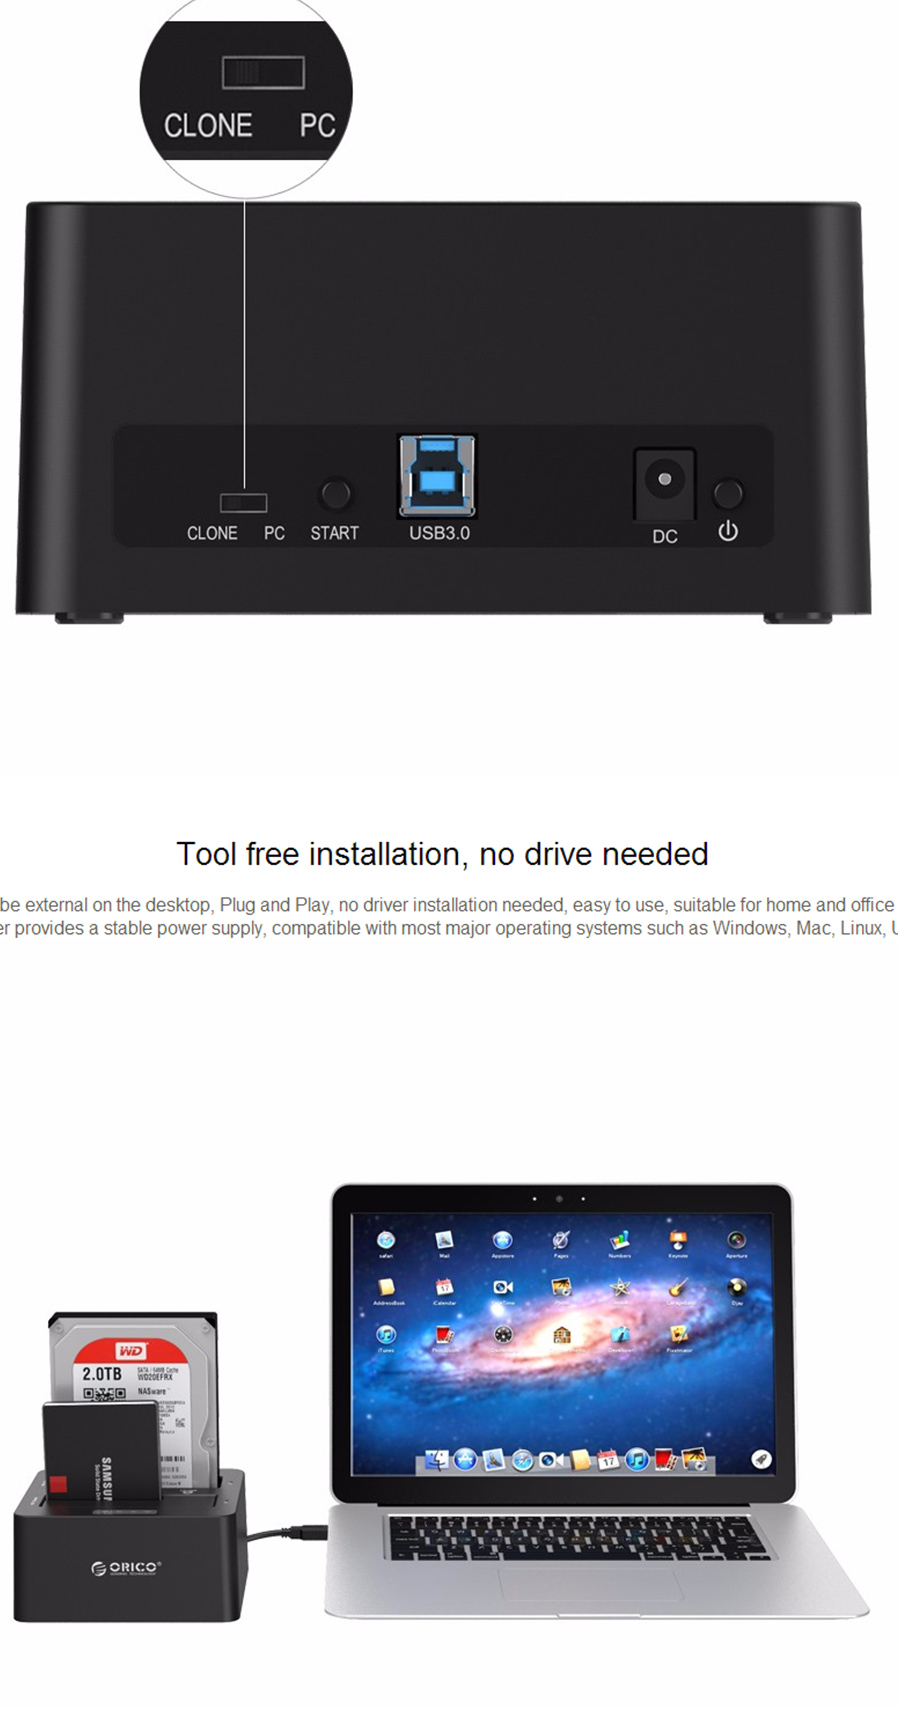 Orico Sata To Usb30 External Hard Drive Docking Station Eu Plug 6629us3 C Usb 30 Dual Bay Hdd Avoid Data Loss Do Not Remove Or Insert Drives When One Is Working In The Please Power Off Before Removing